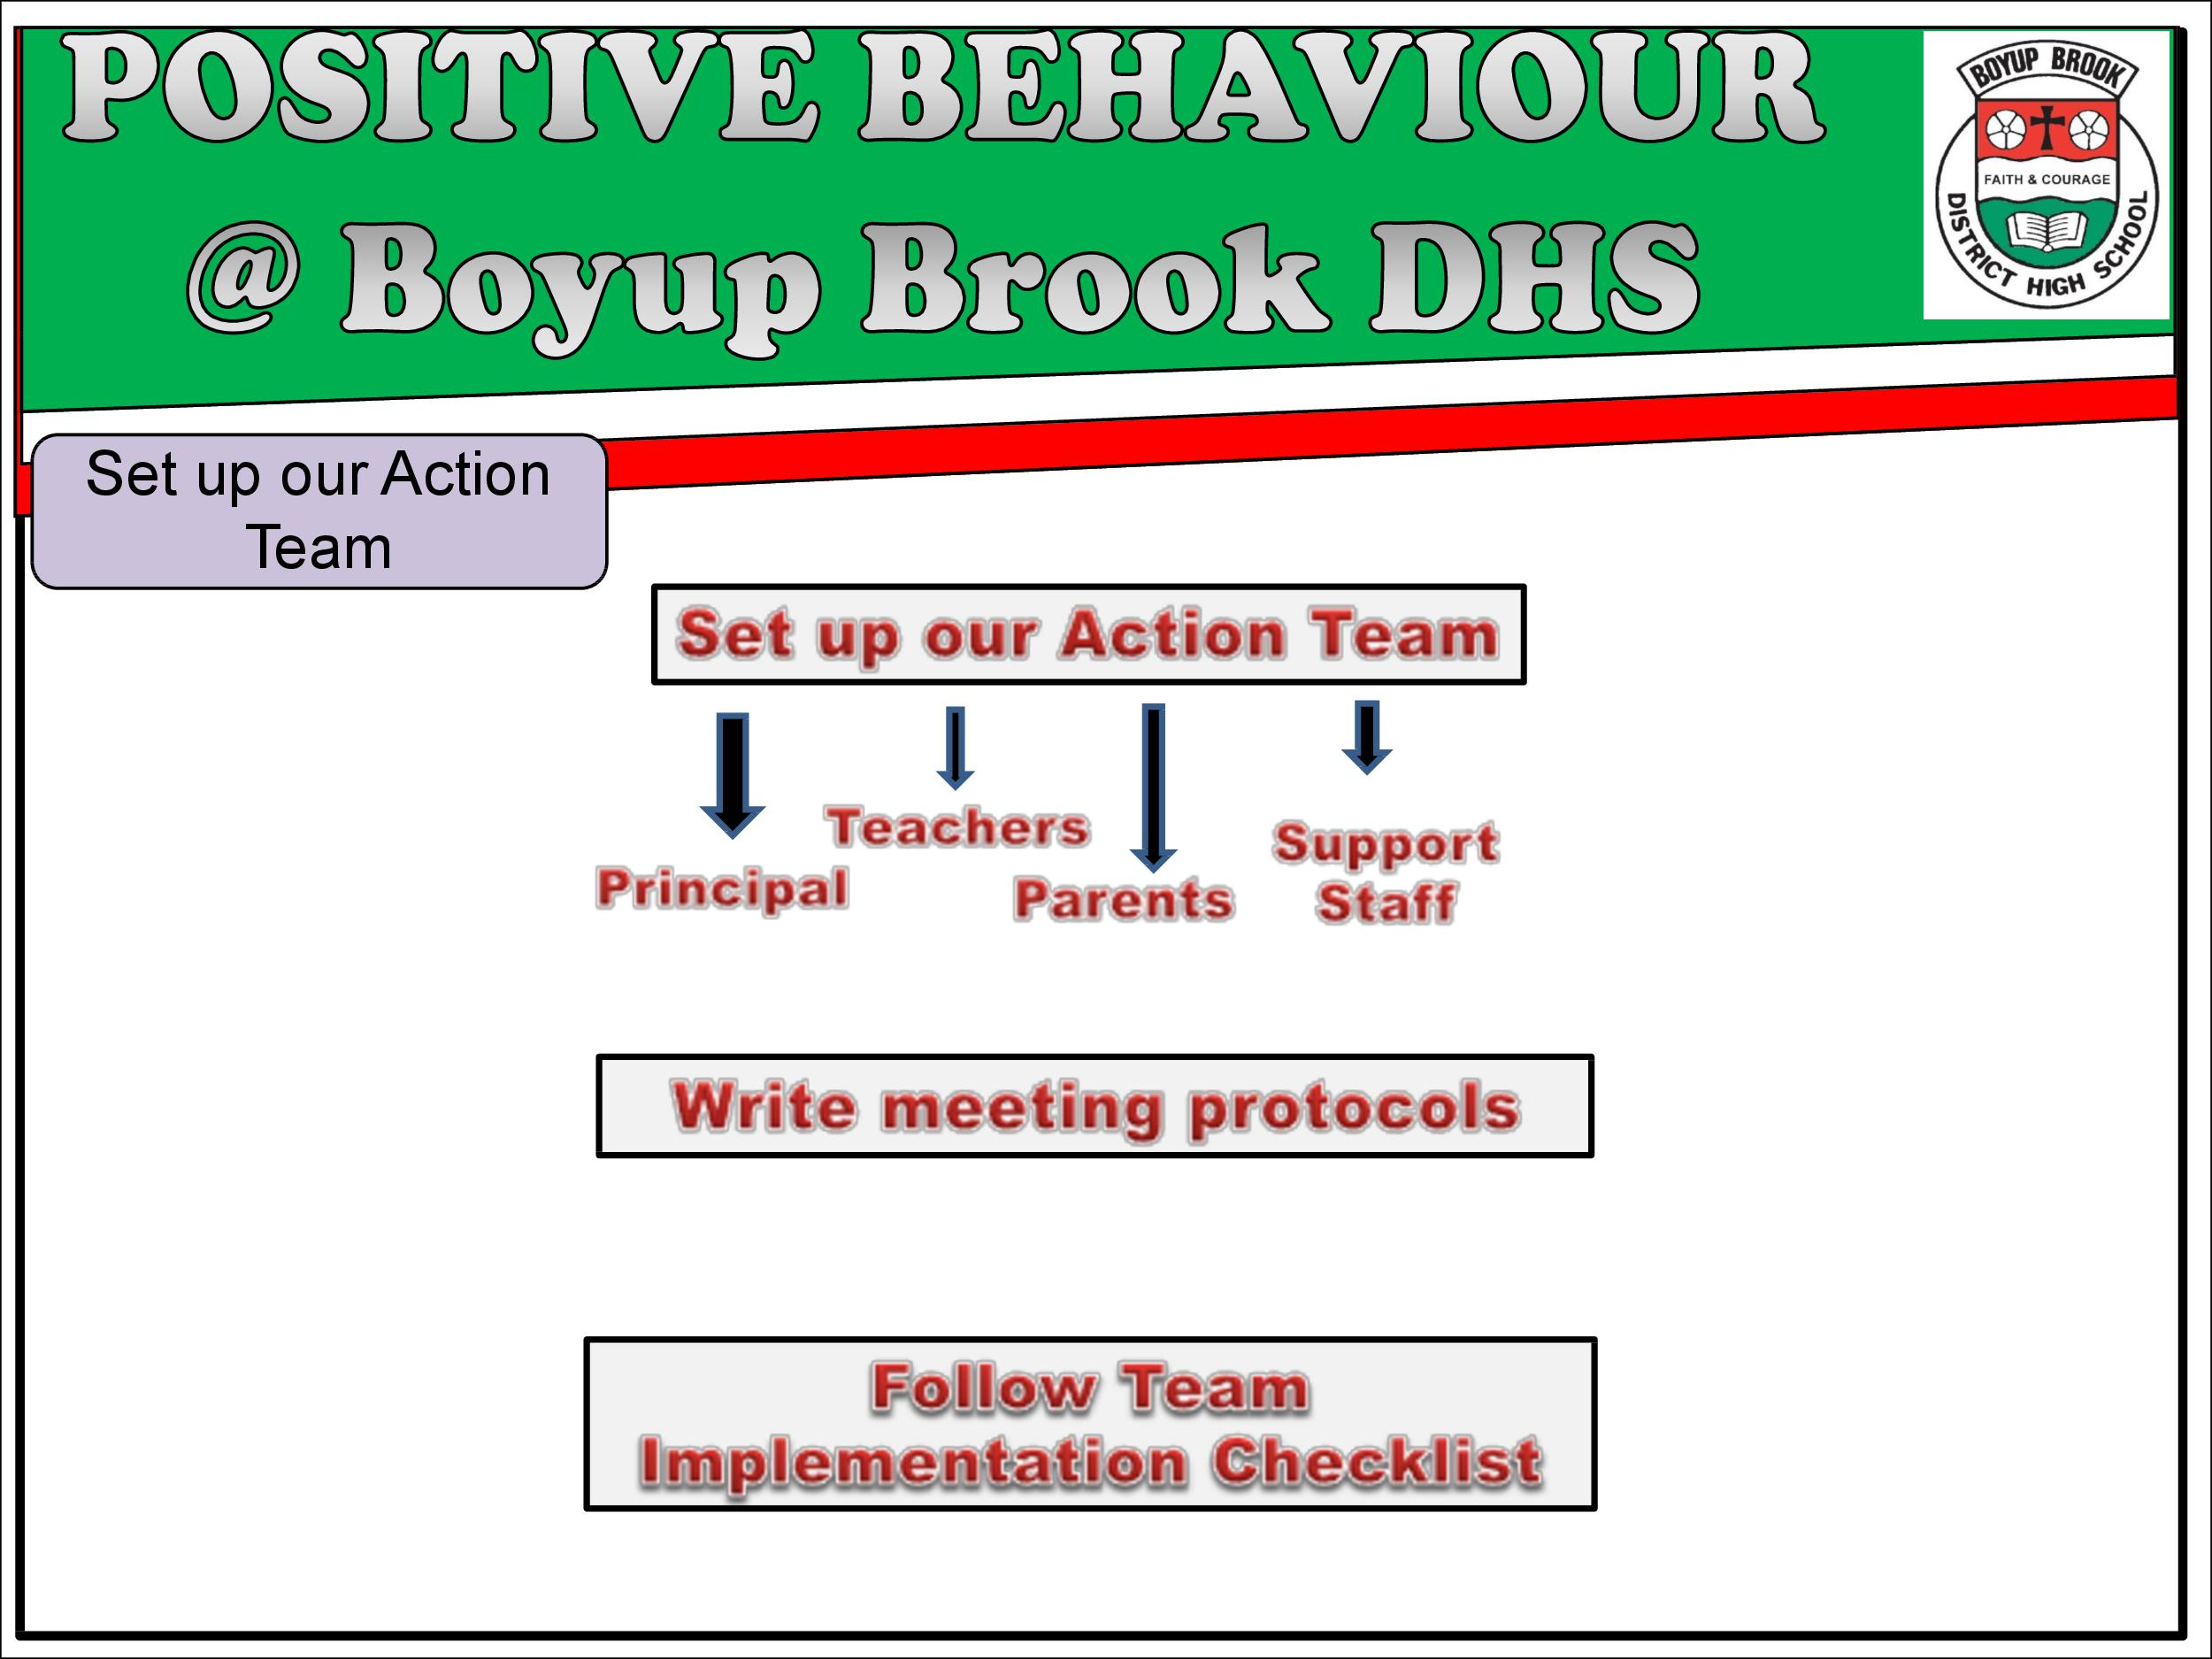 Positive Behaviour Support Page 5